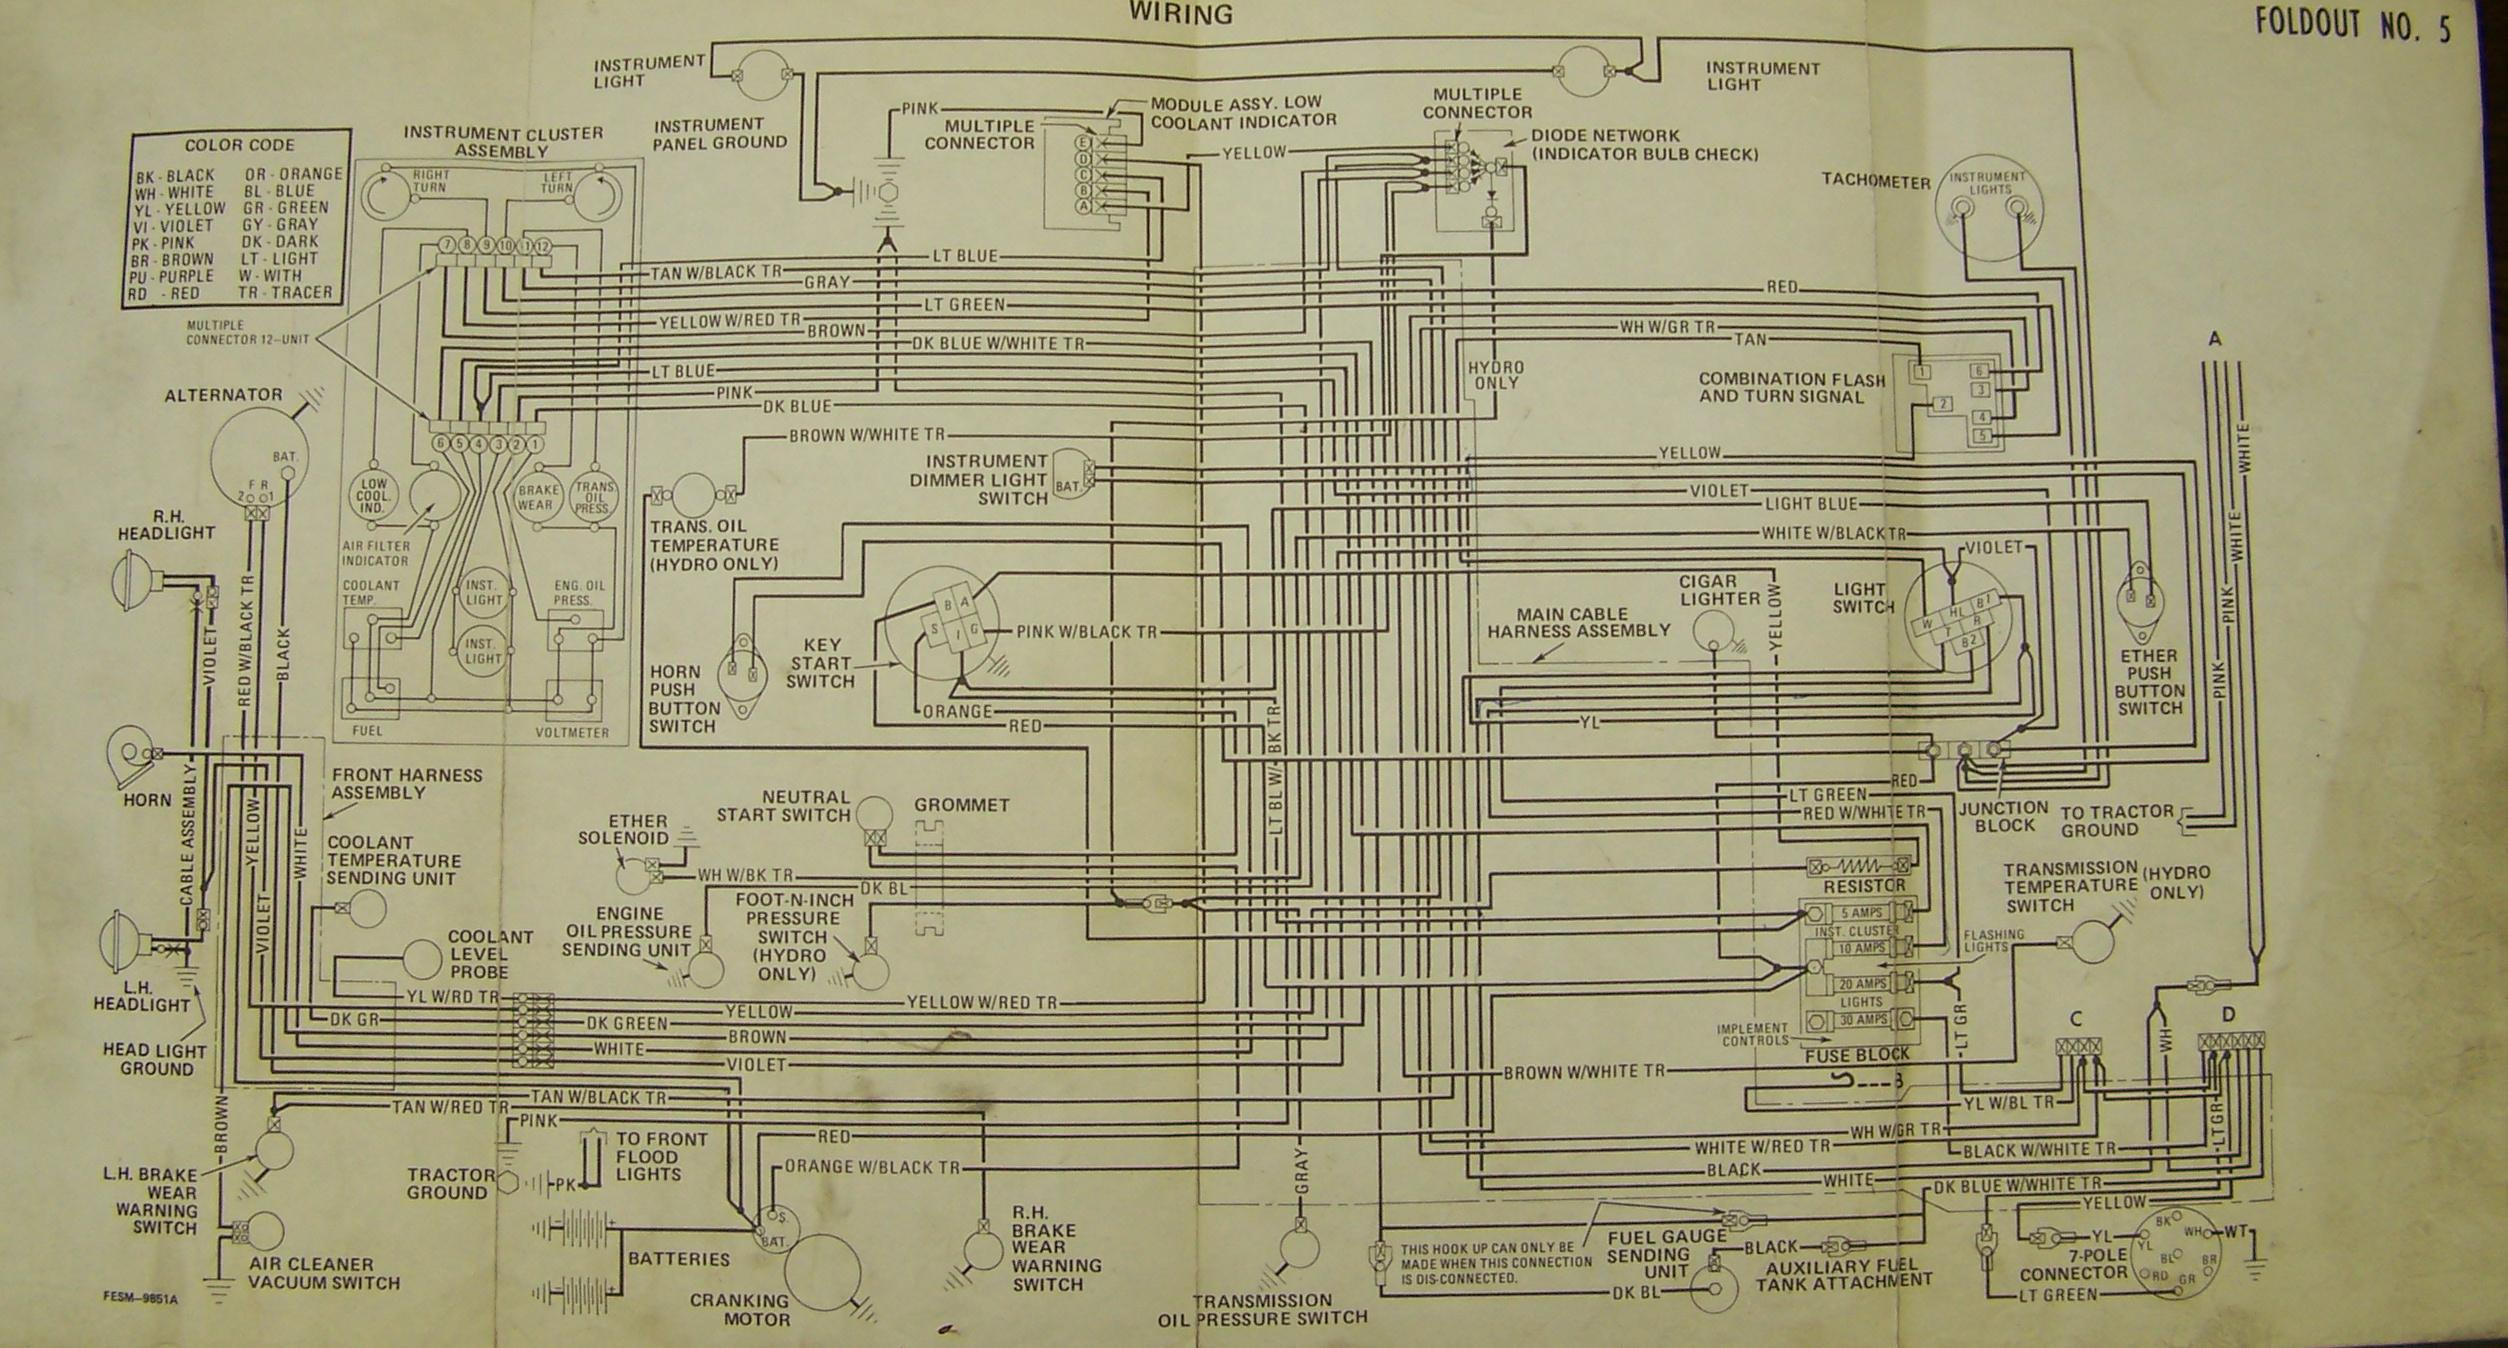 86series5 carter & gruenewald co inc ih farmall tractor electrical international wiring diagram at bayanpartner.co